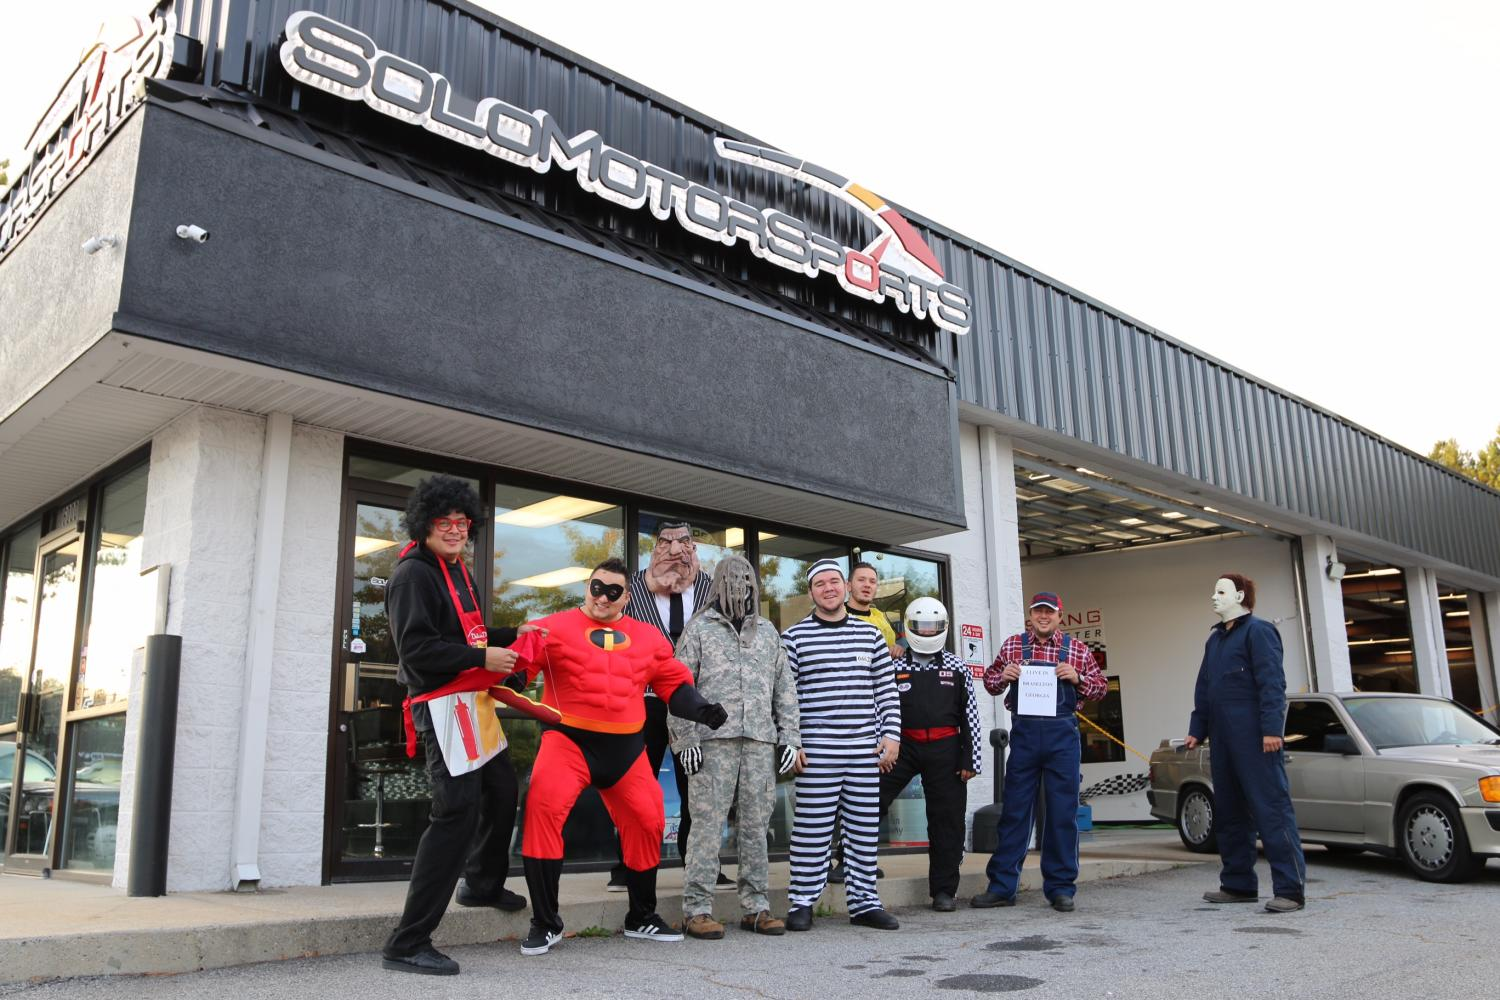 Halloween Party at the Shop